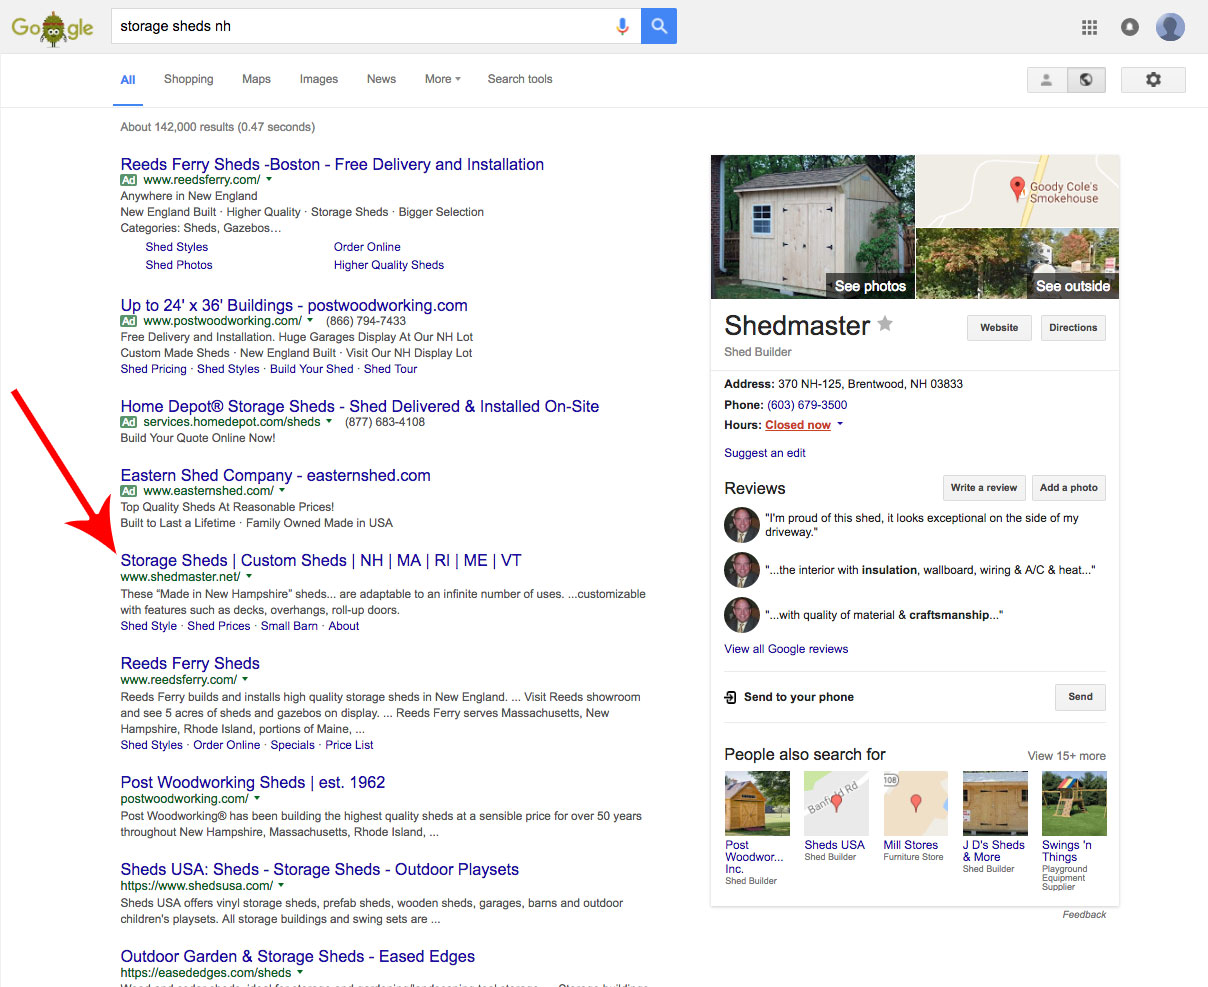 seo marketing great pond design